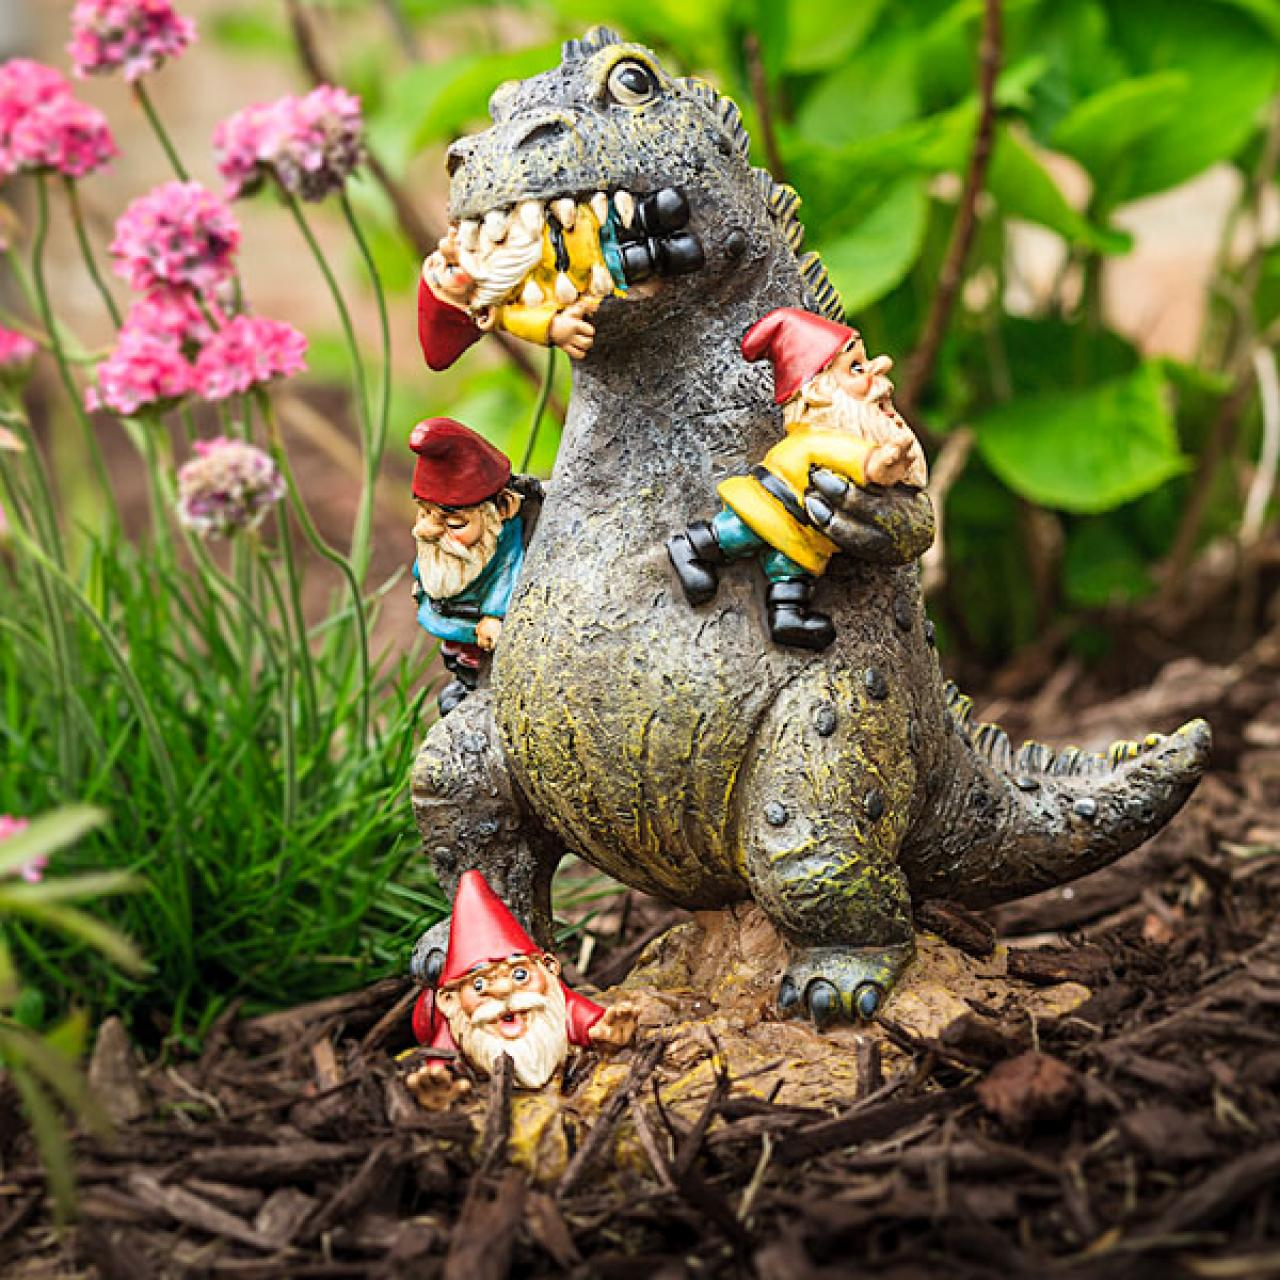 Dinosaur Lawn Decorations Live It Up Gift Guide Geek Lifestyle Gifts From Firefly Hellboy